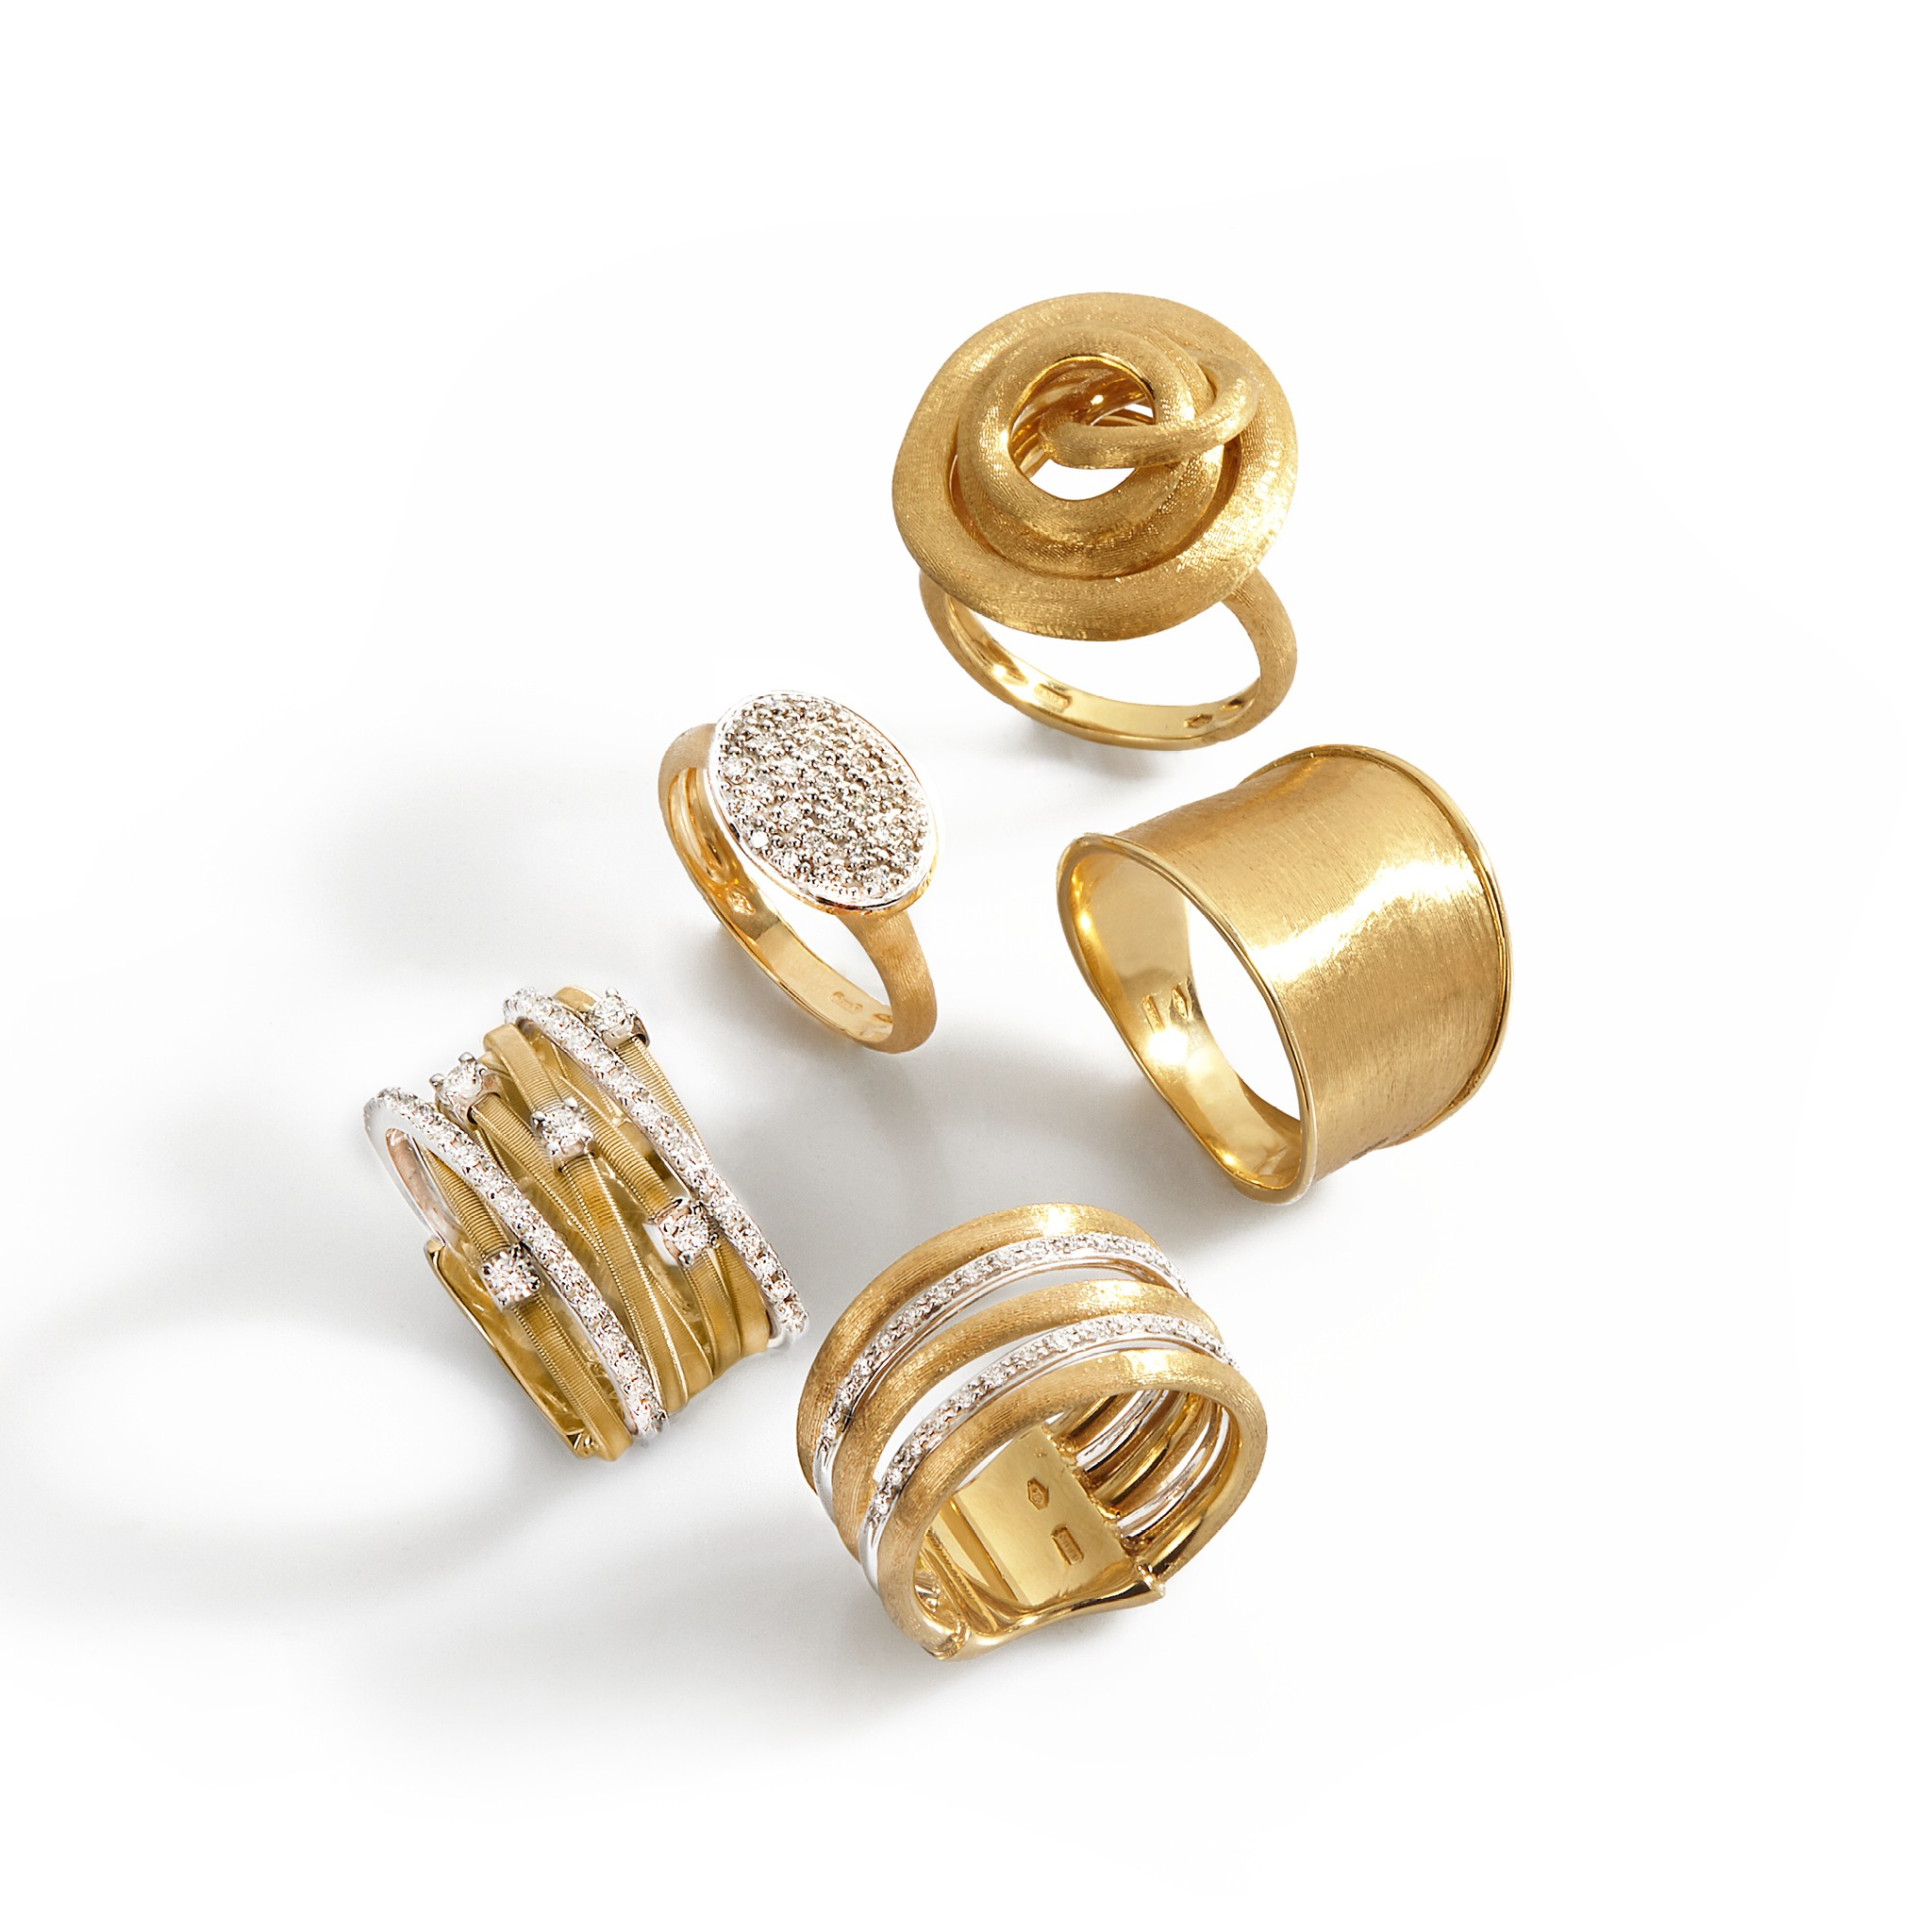 Gold rings by Marco Bicego on El Paseo in Palm Desert